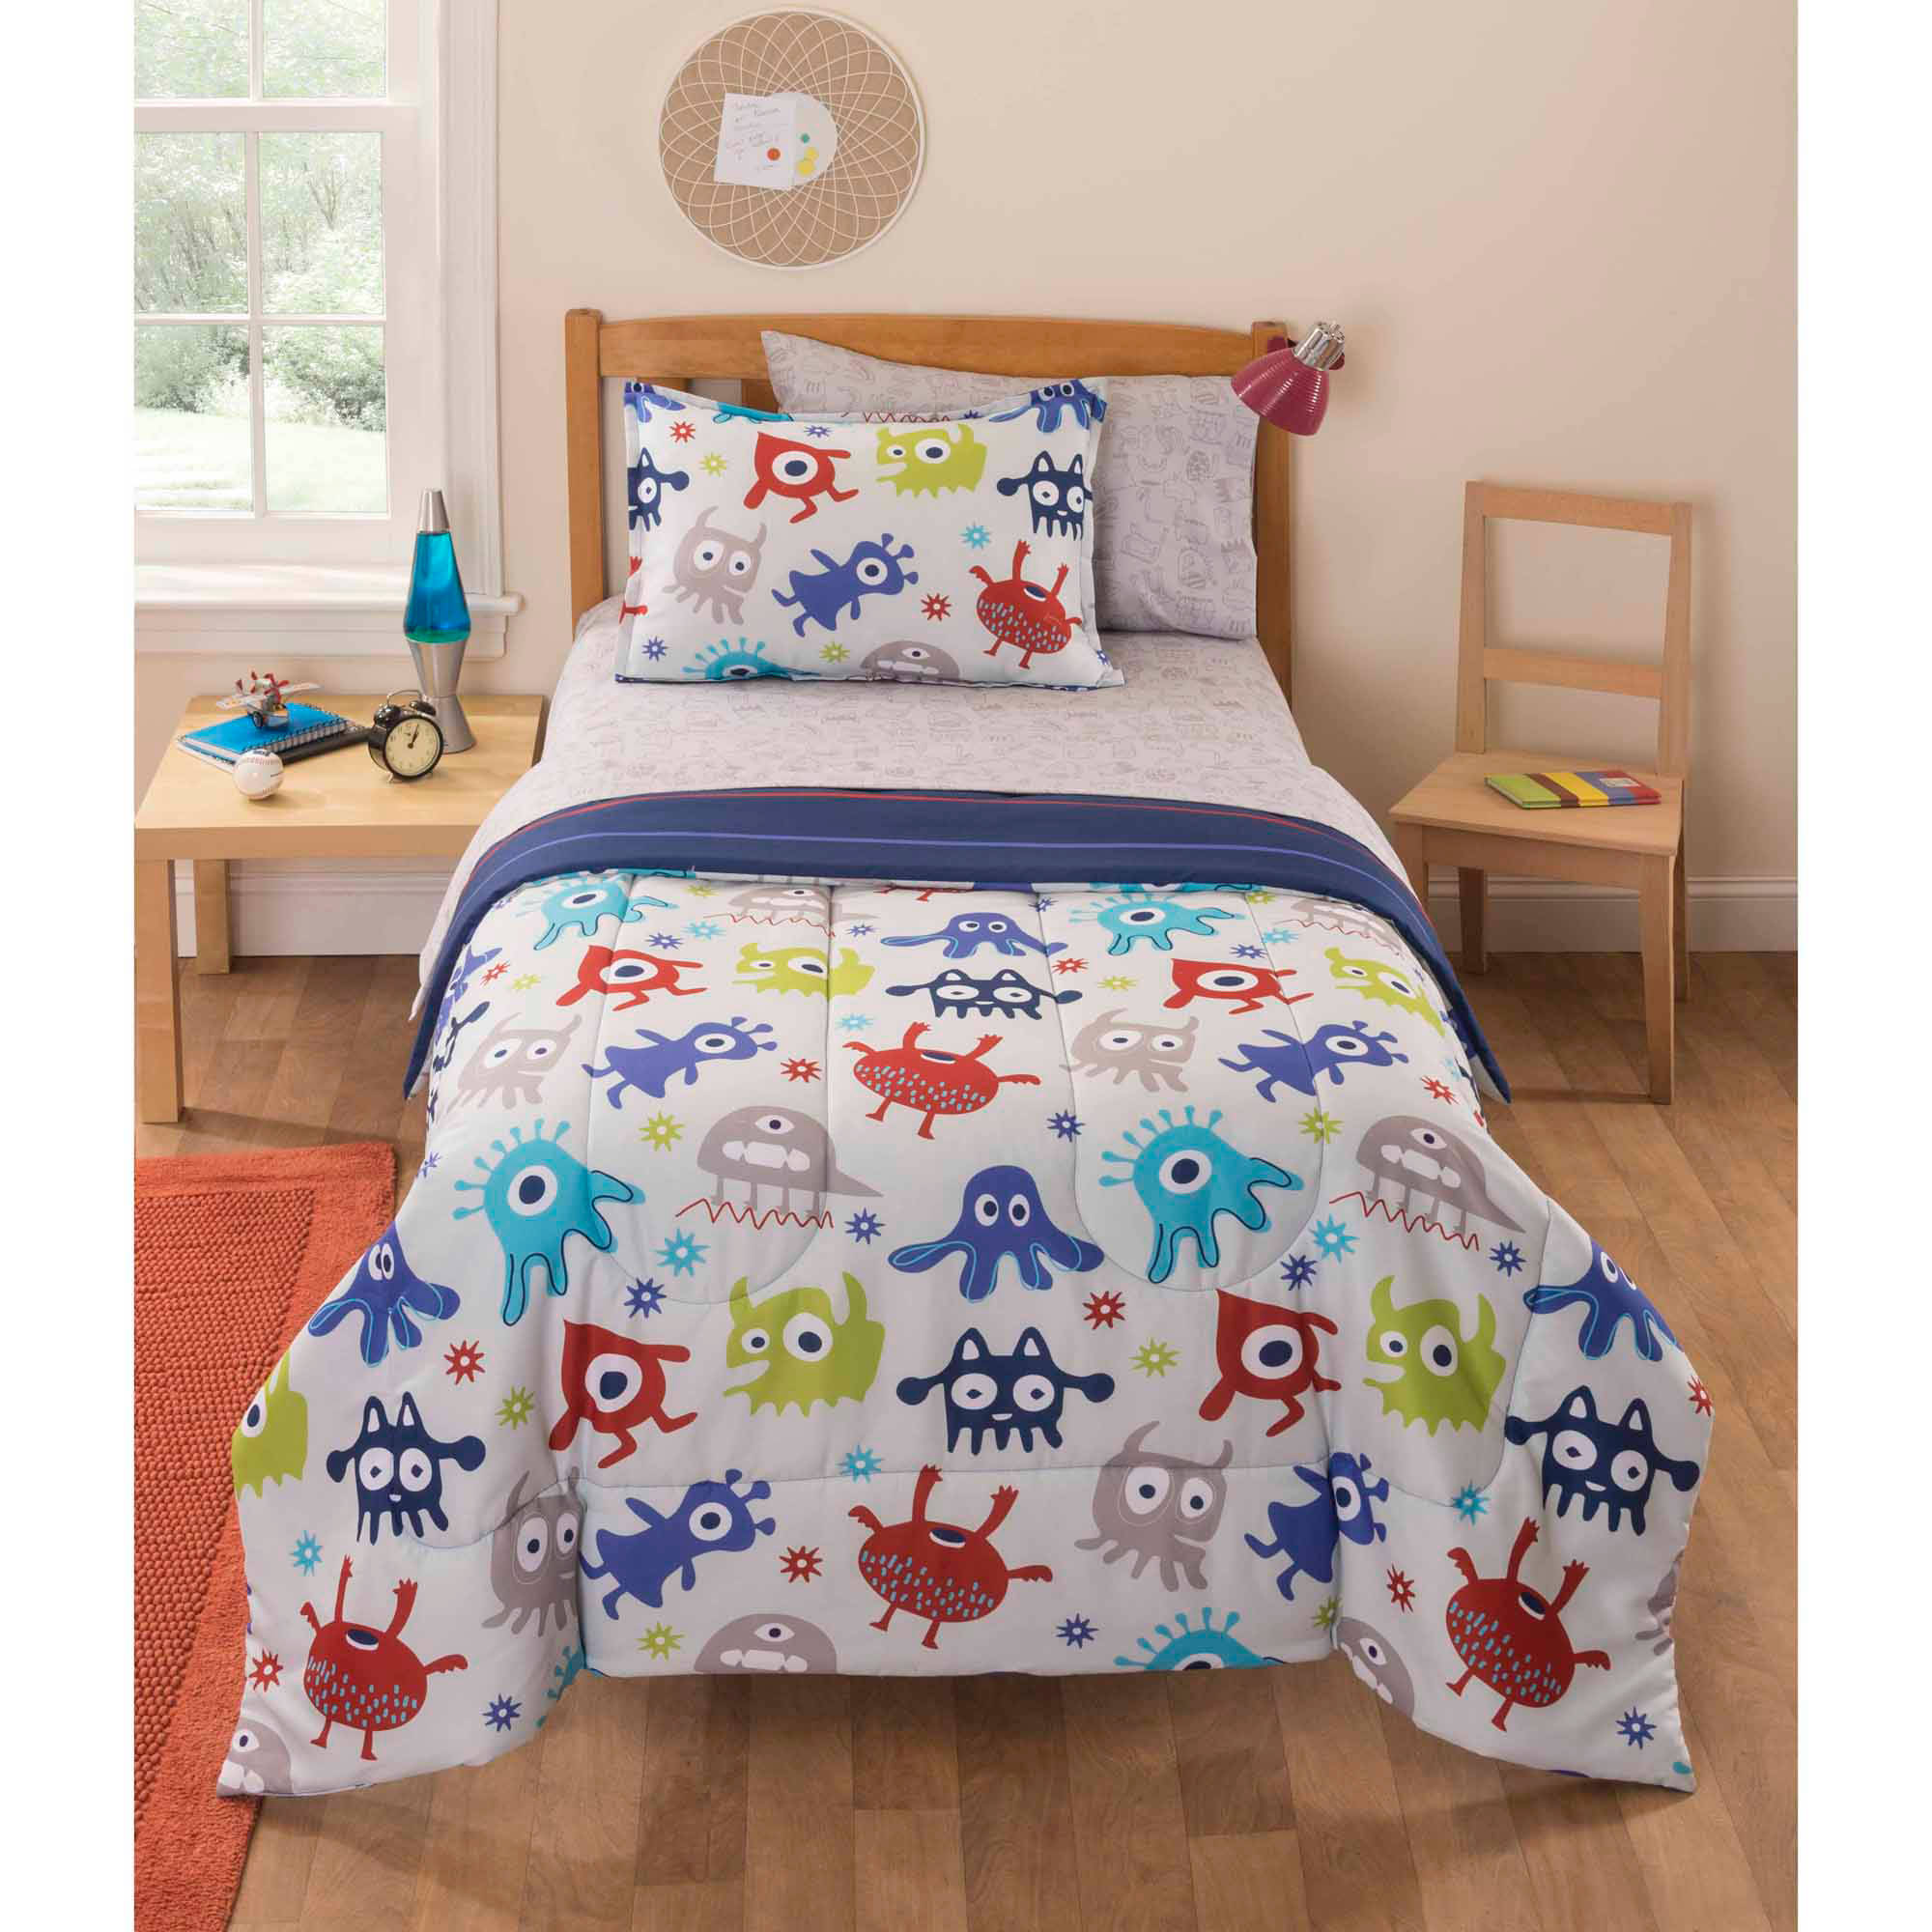 Mainstays Kids Monster Stripe Bedding Bed in a Bag by Idea Nuova